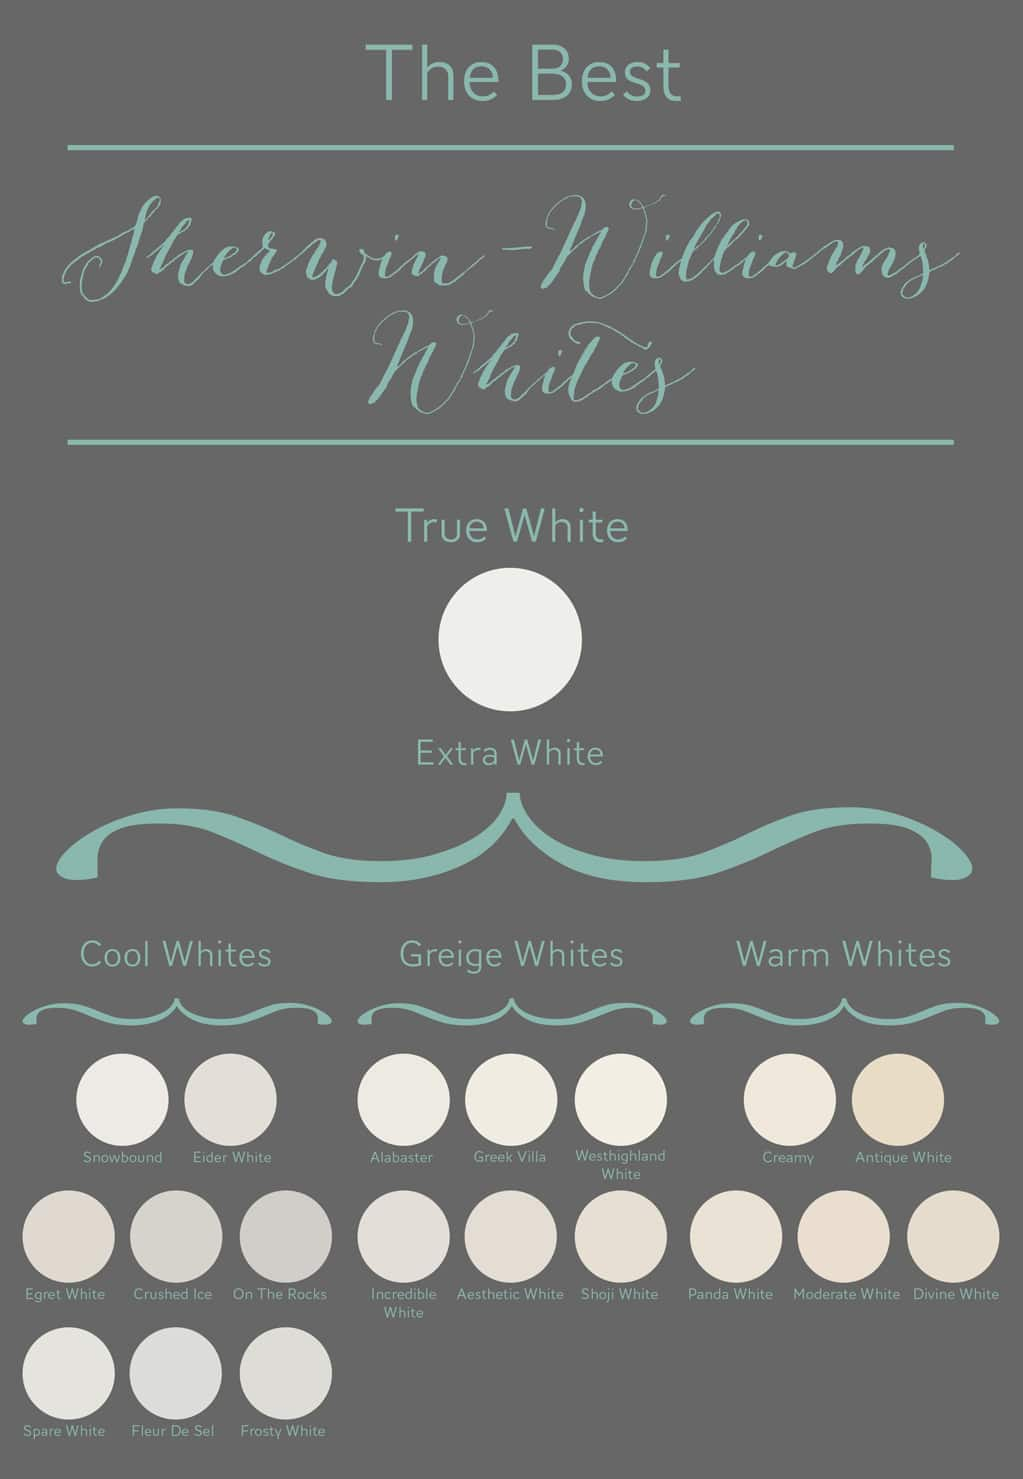 The Best Sherwin Williams Whites Undertones Explained